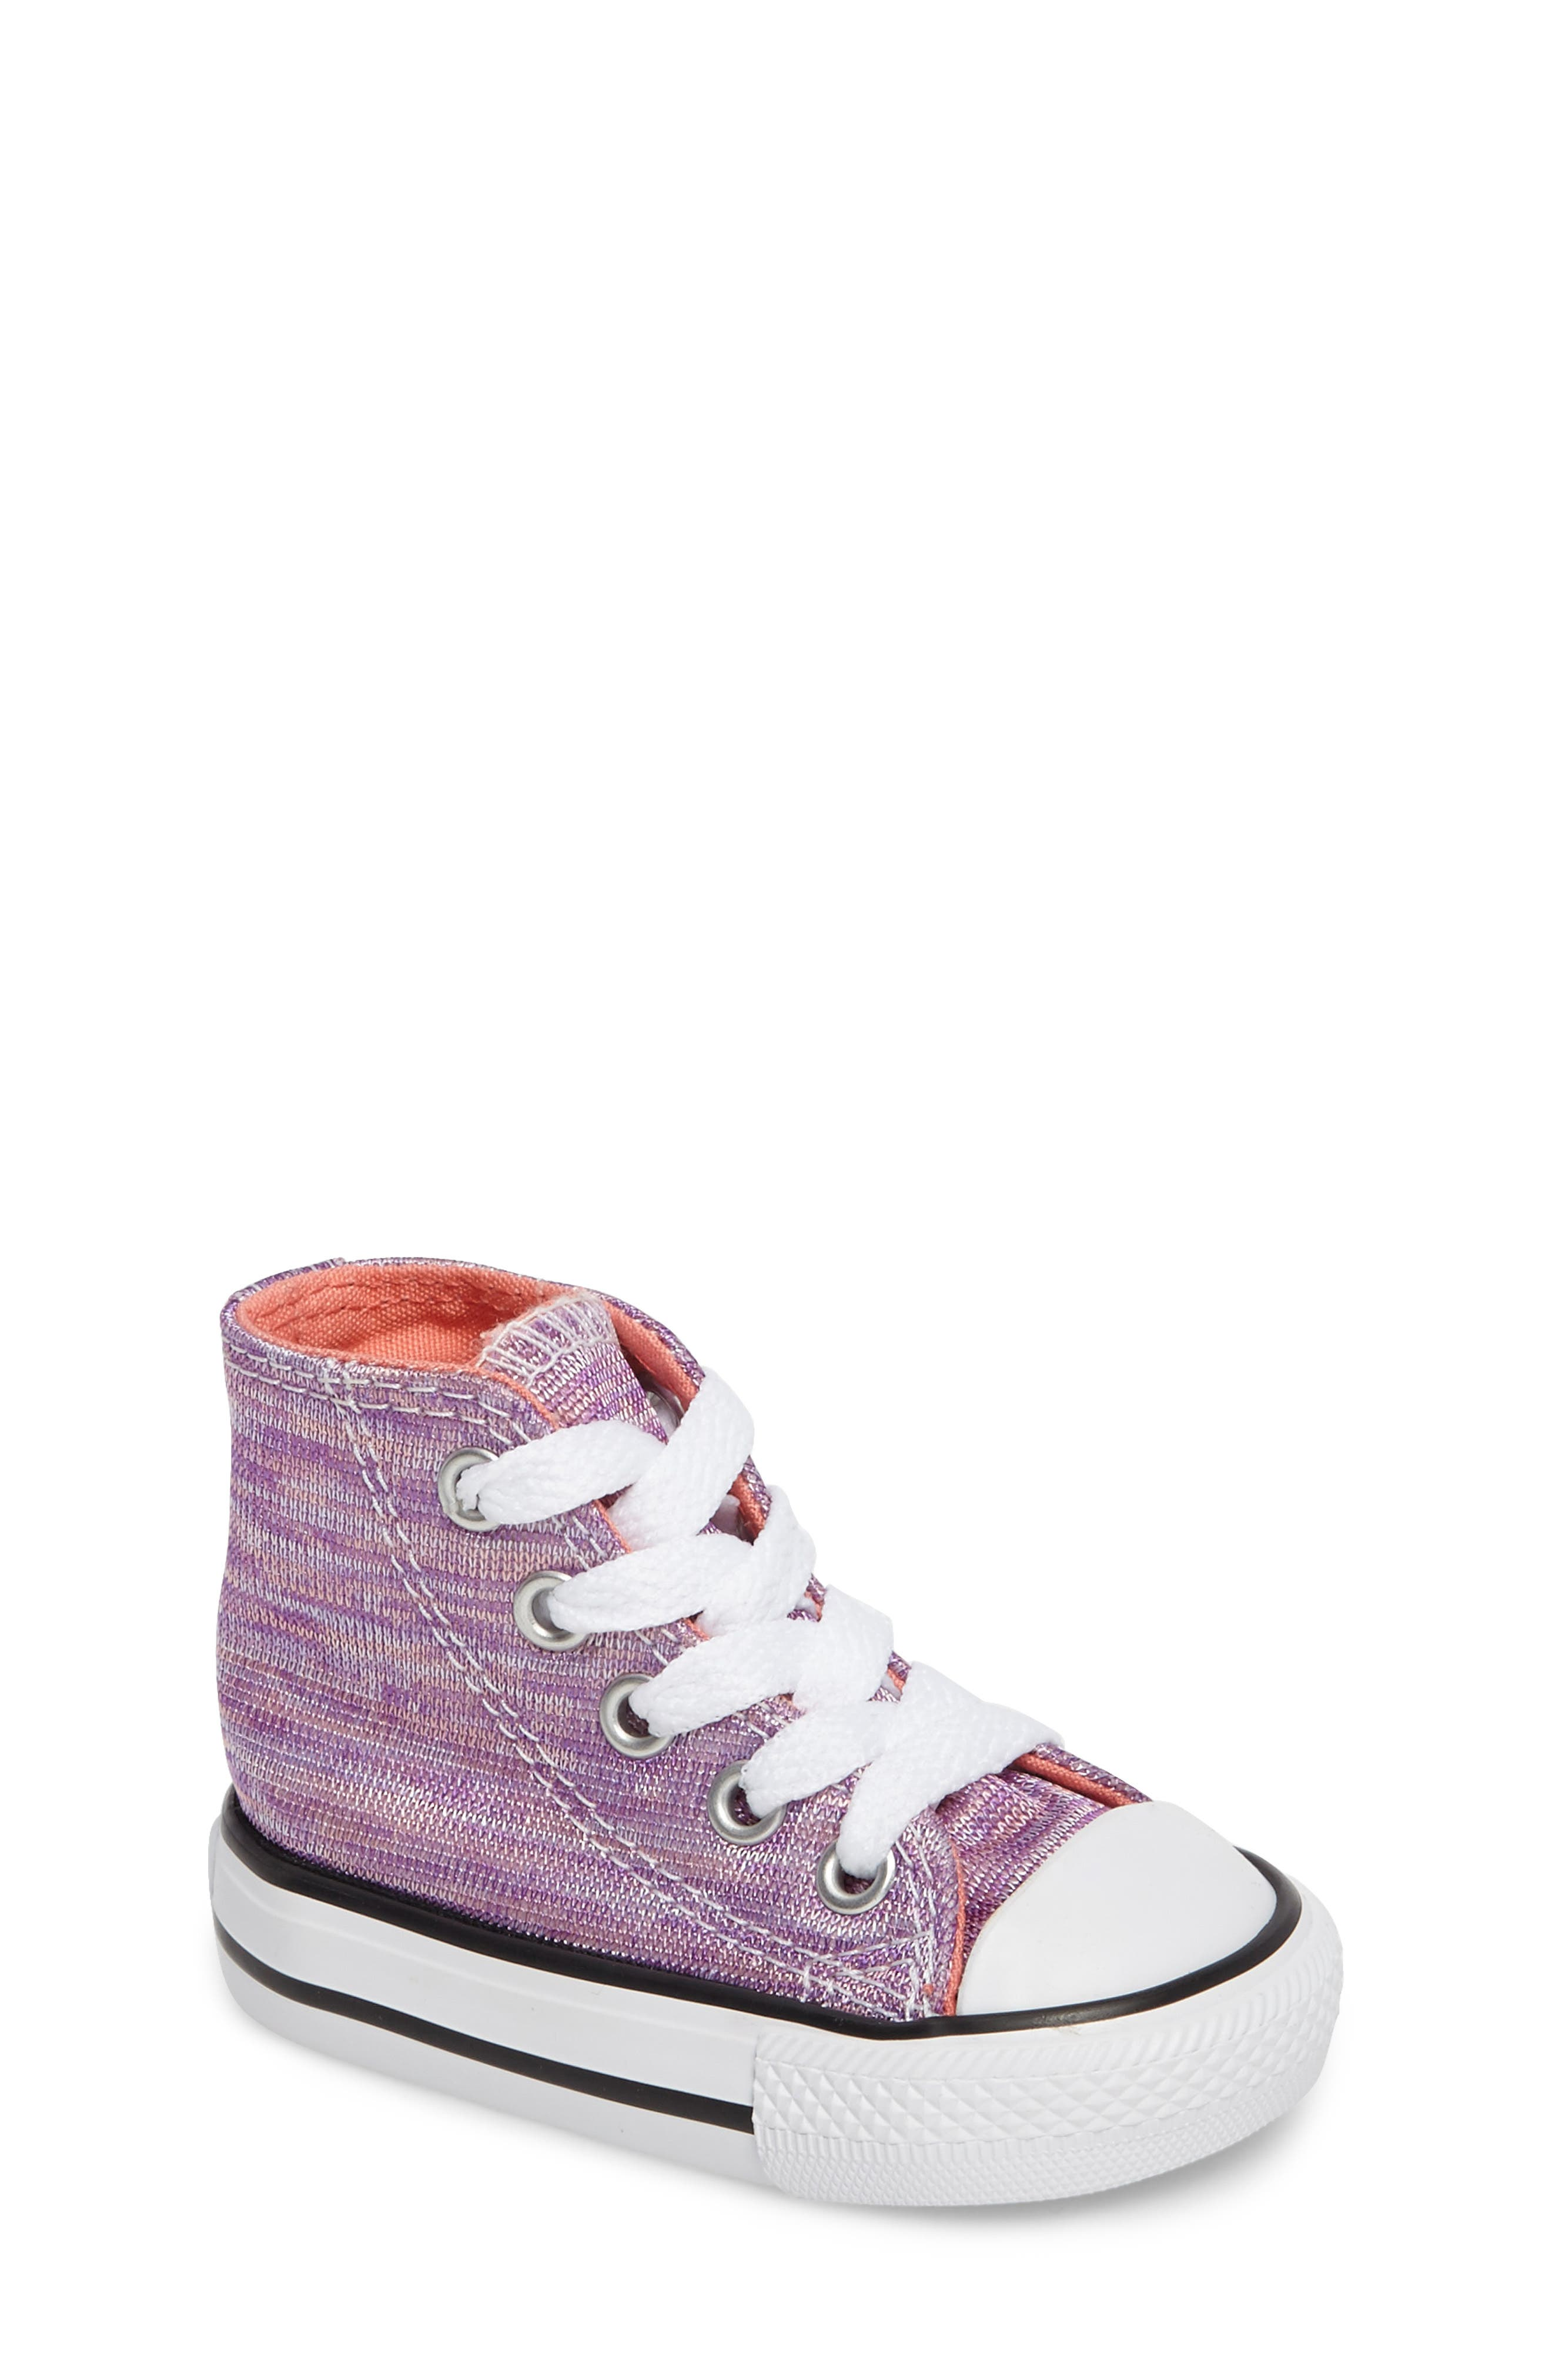 CONVERSE Chuck Taylor<sup>®</sup> All Star<sup>®</sup> Knit High Top Sneaker